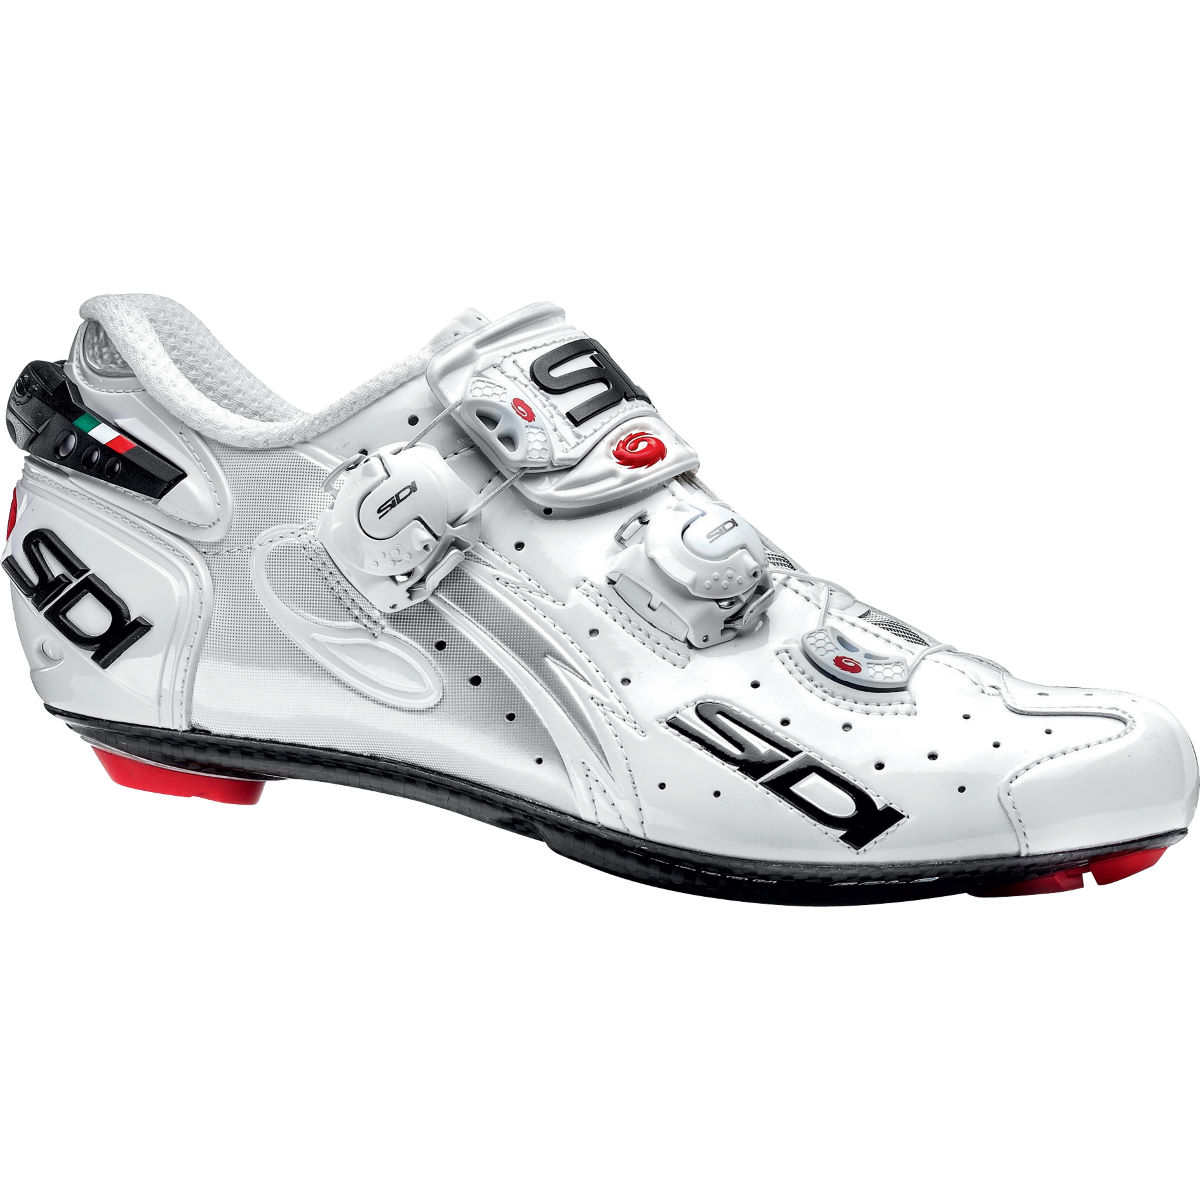 Sidi Women's Wire Carbon Vernice Road Shoe - 2015